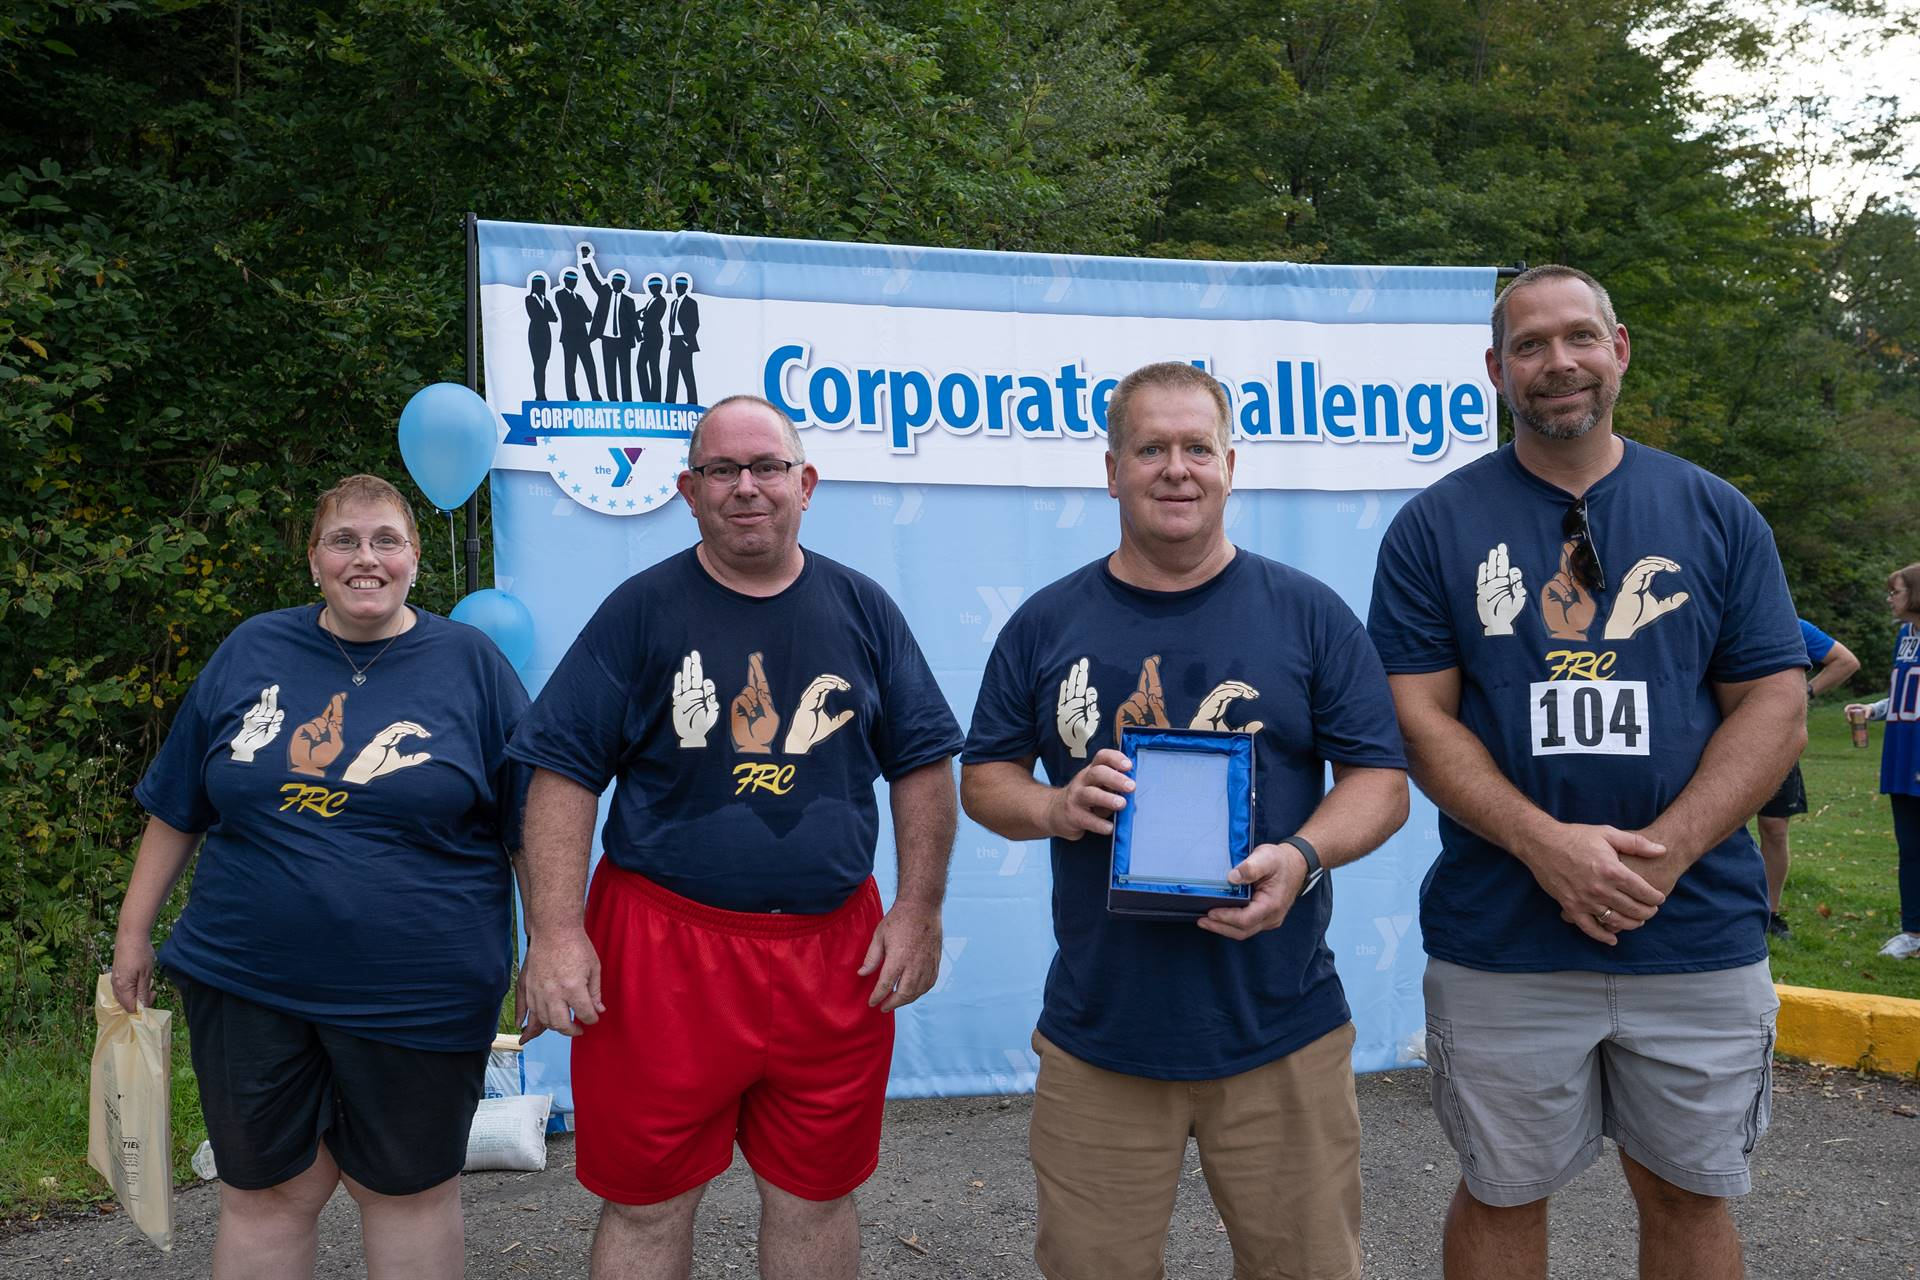 Four employees in front of corporate challenge banner